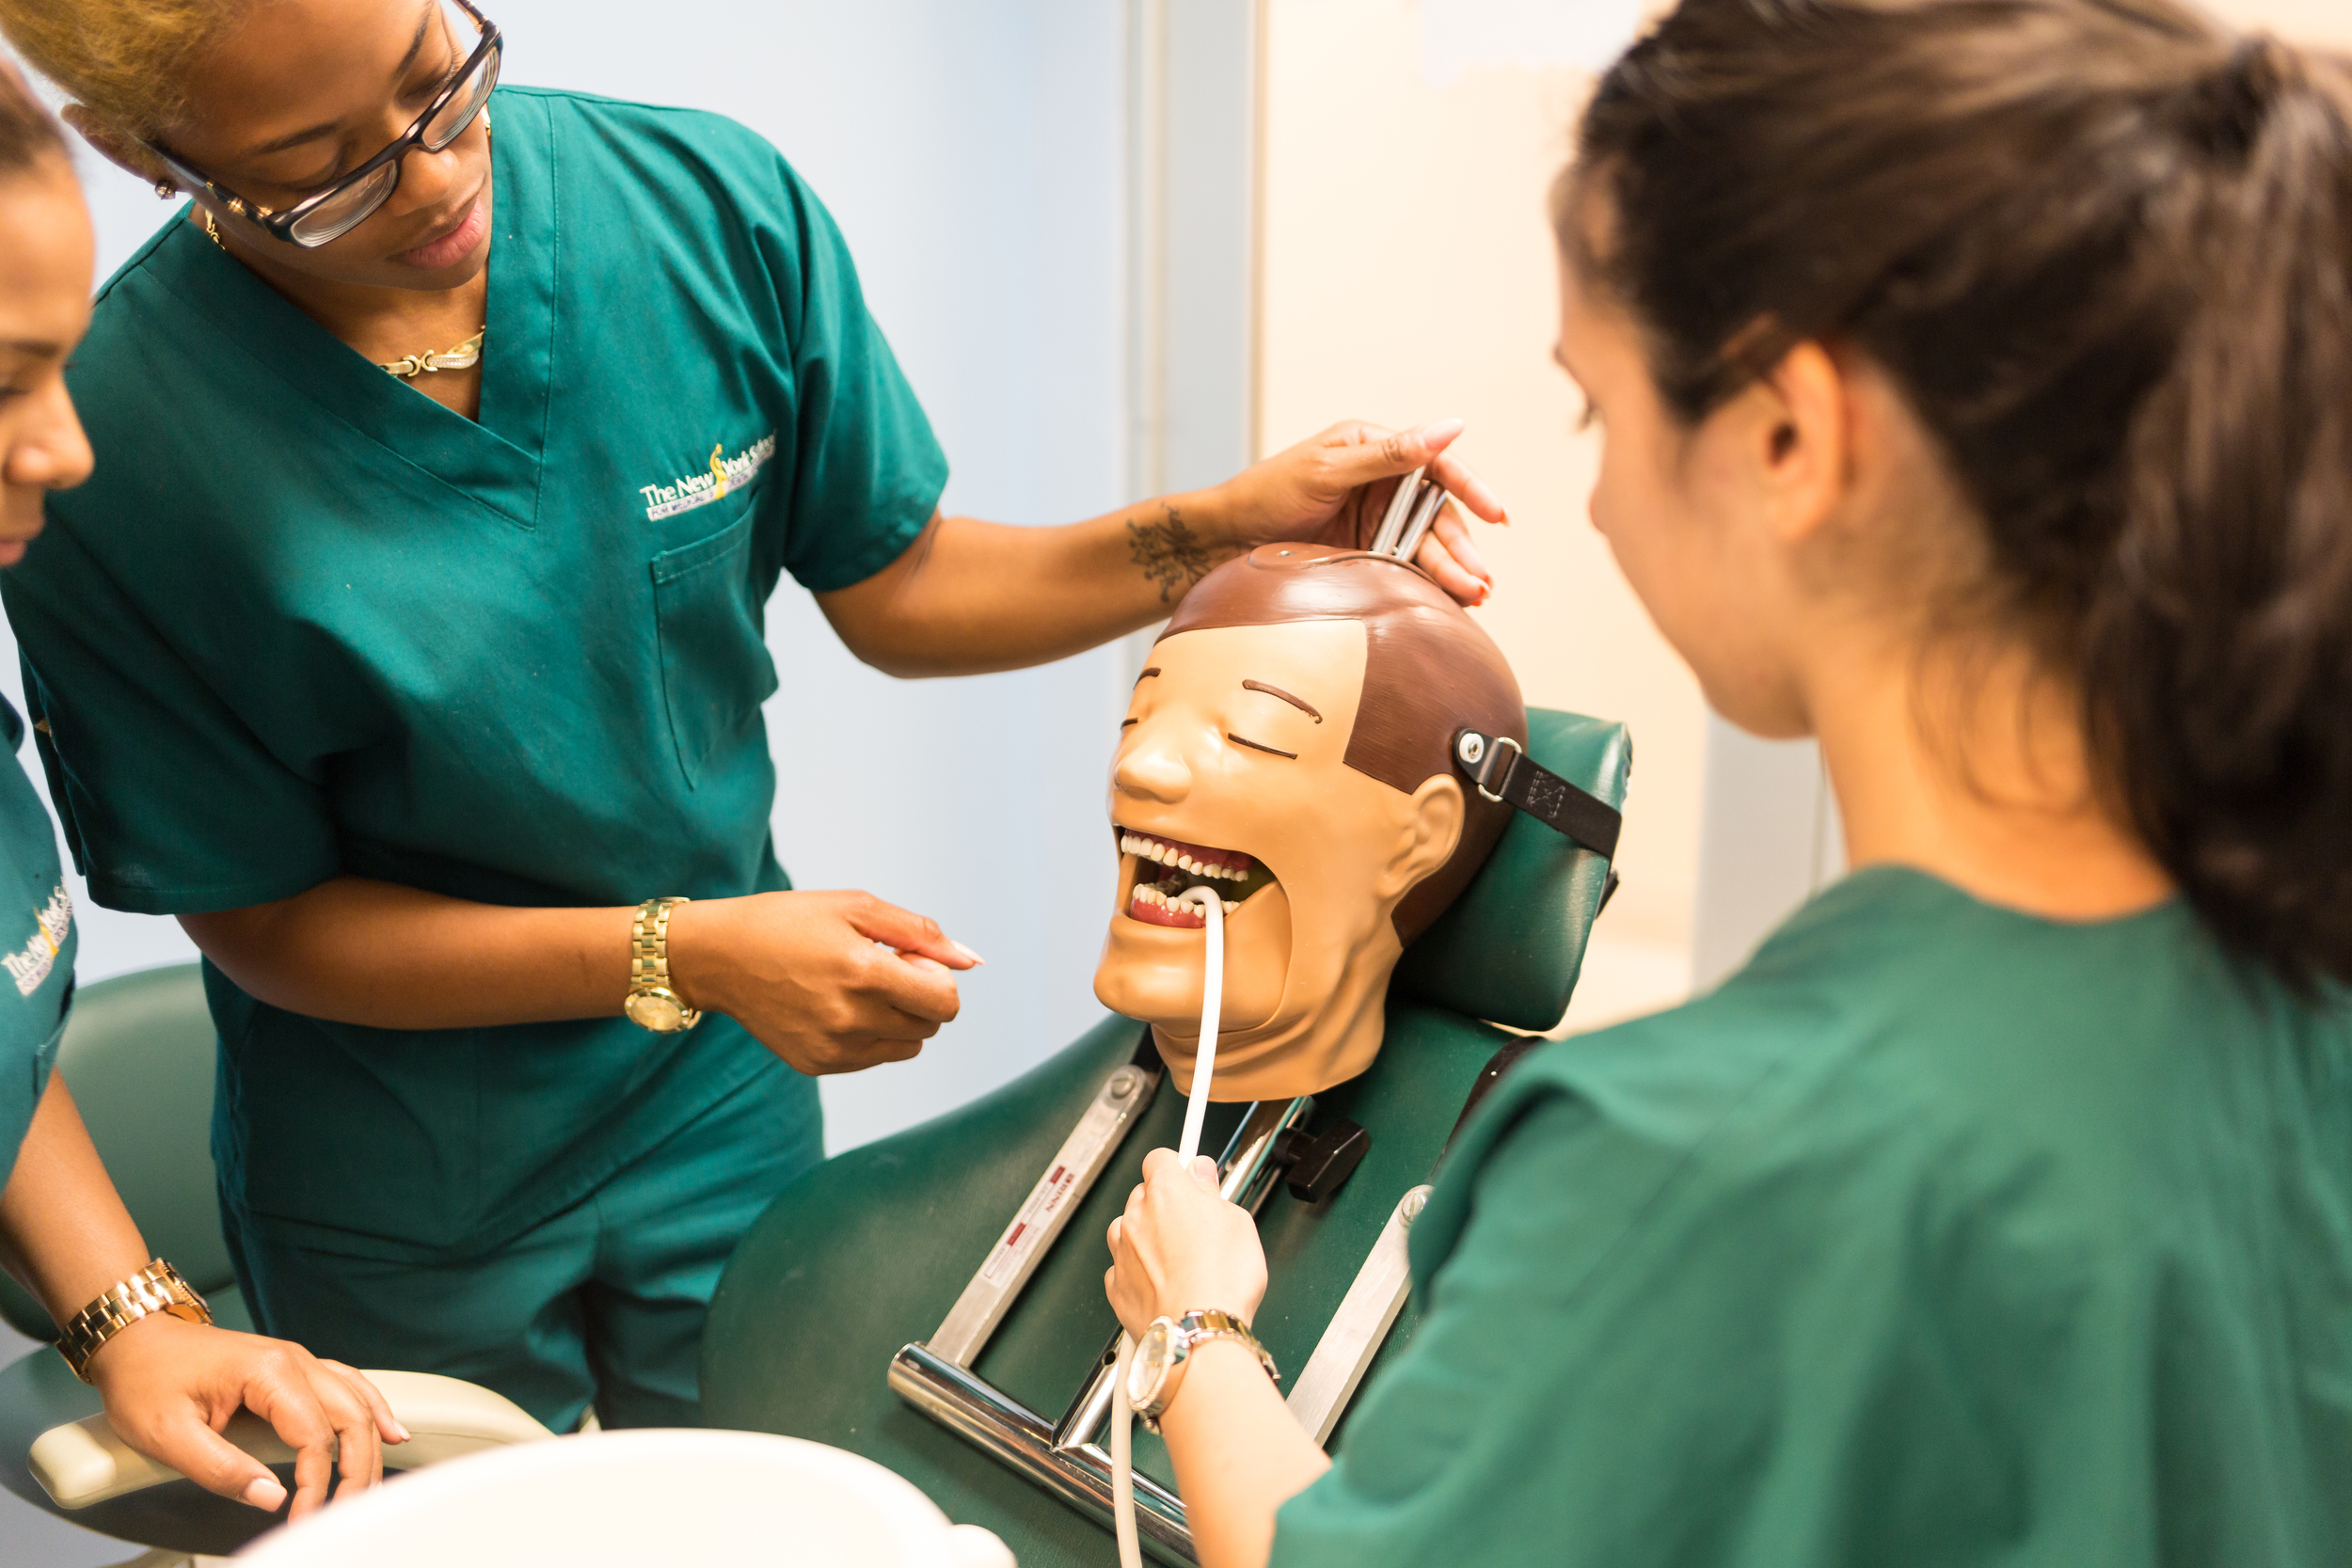 NYSMDA Dental Assistant Students practicing on Model.